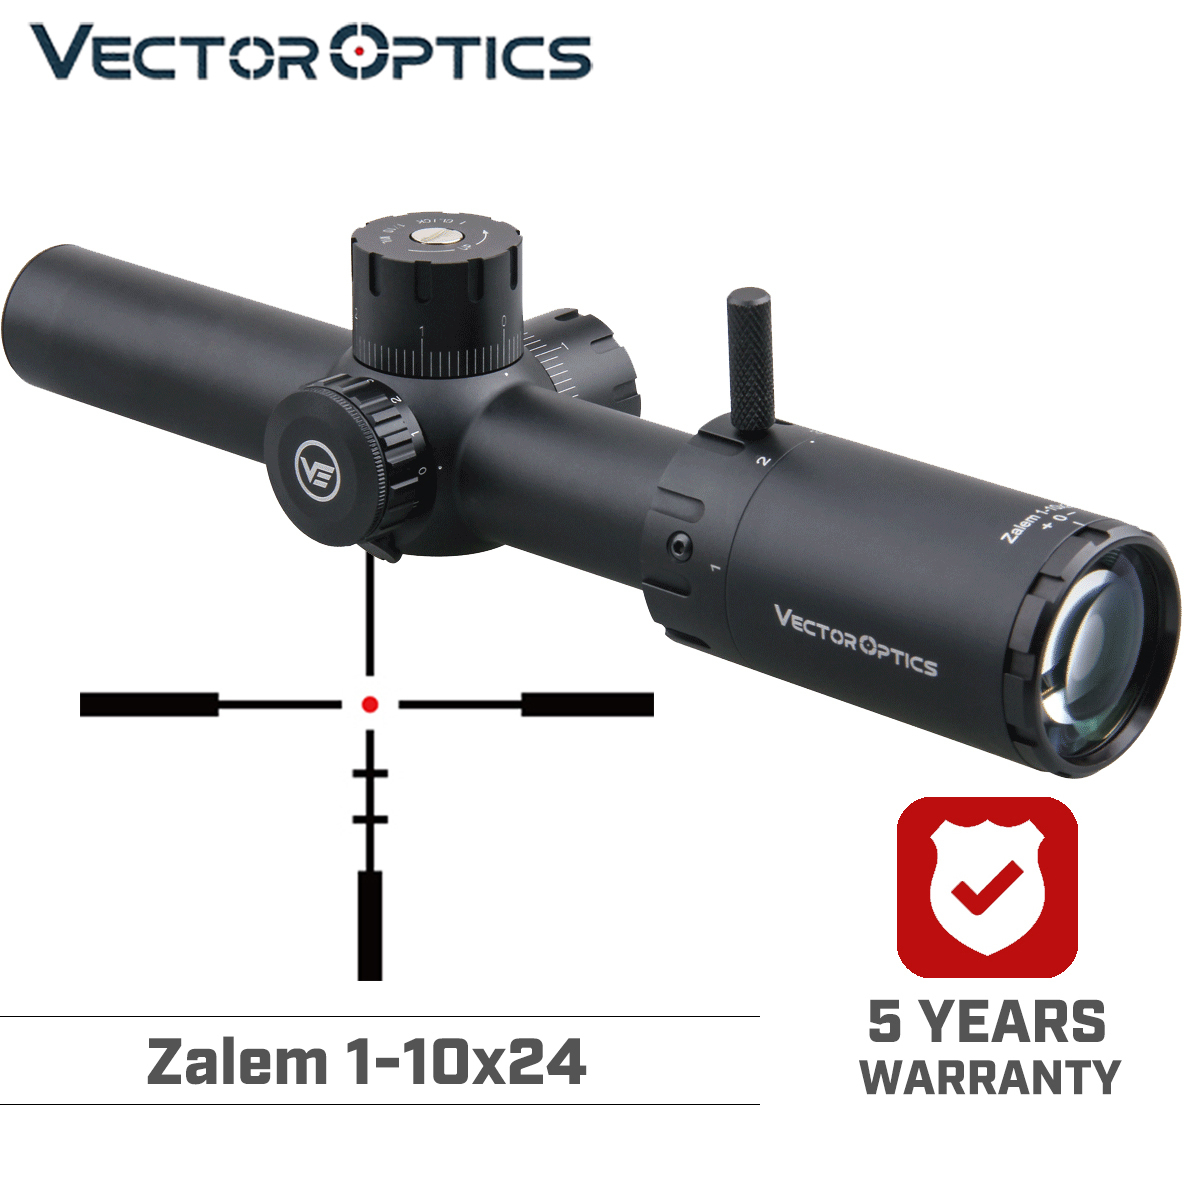 Vector Optics Zalem 1-10x24 Hunting Riflescope Long Eye Relief 11 Levels Red 1/10 MIL BDC Optical Scope For